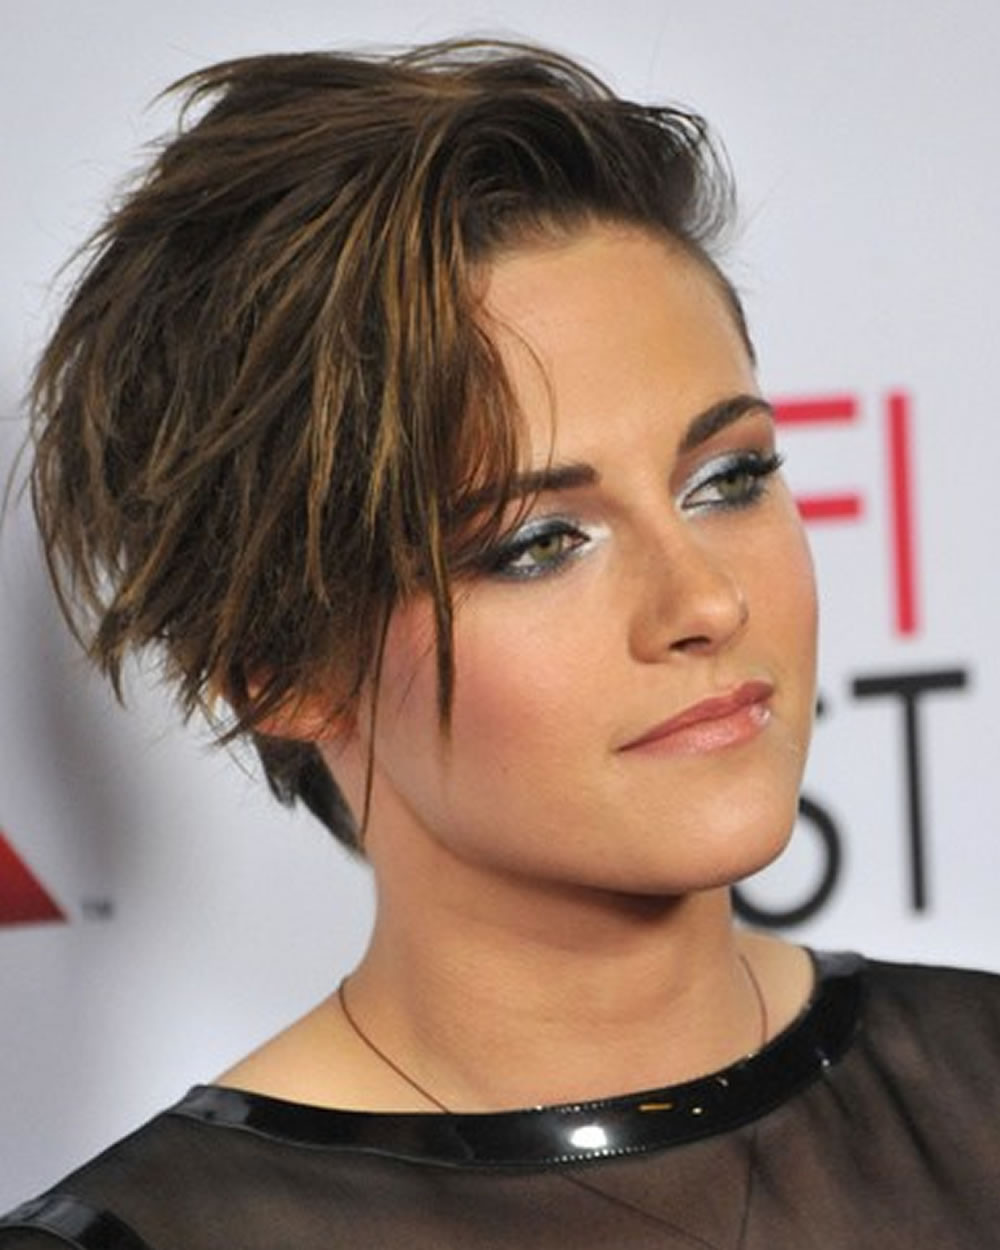 Best ideas about Trending Haircuts . Save or Pin Trend Short Haircuts Bob & Pixie Hair Ideas pilation Now.